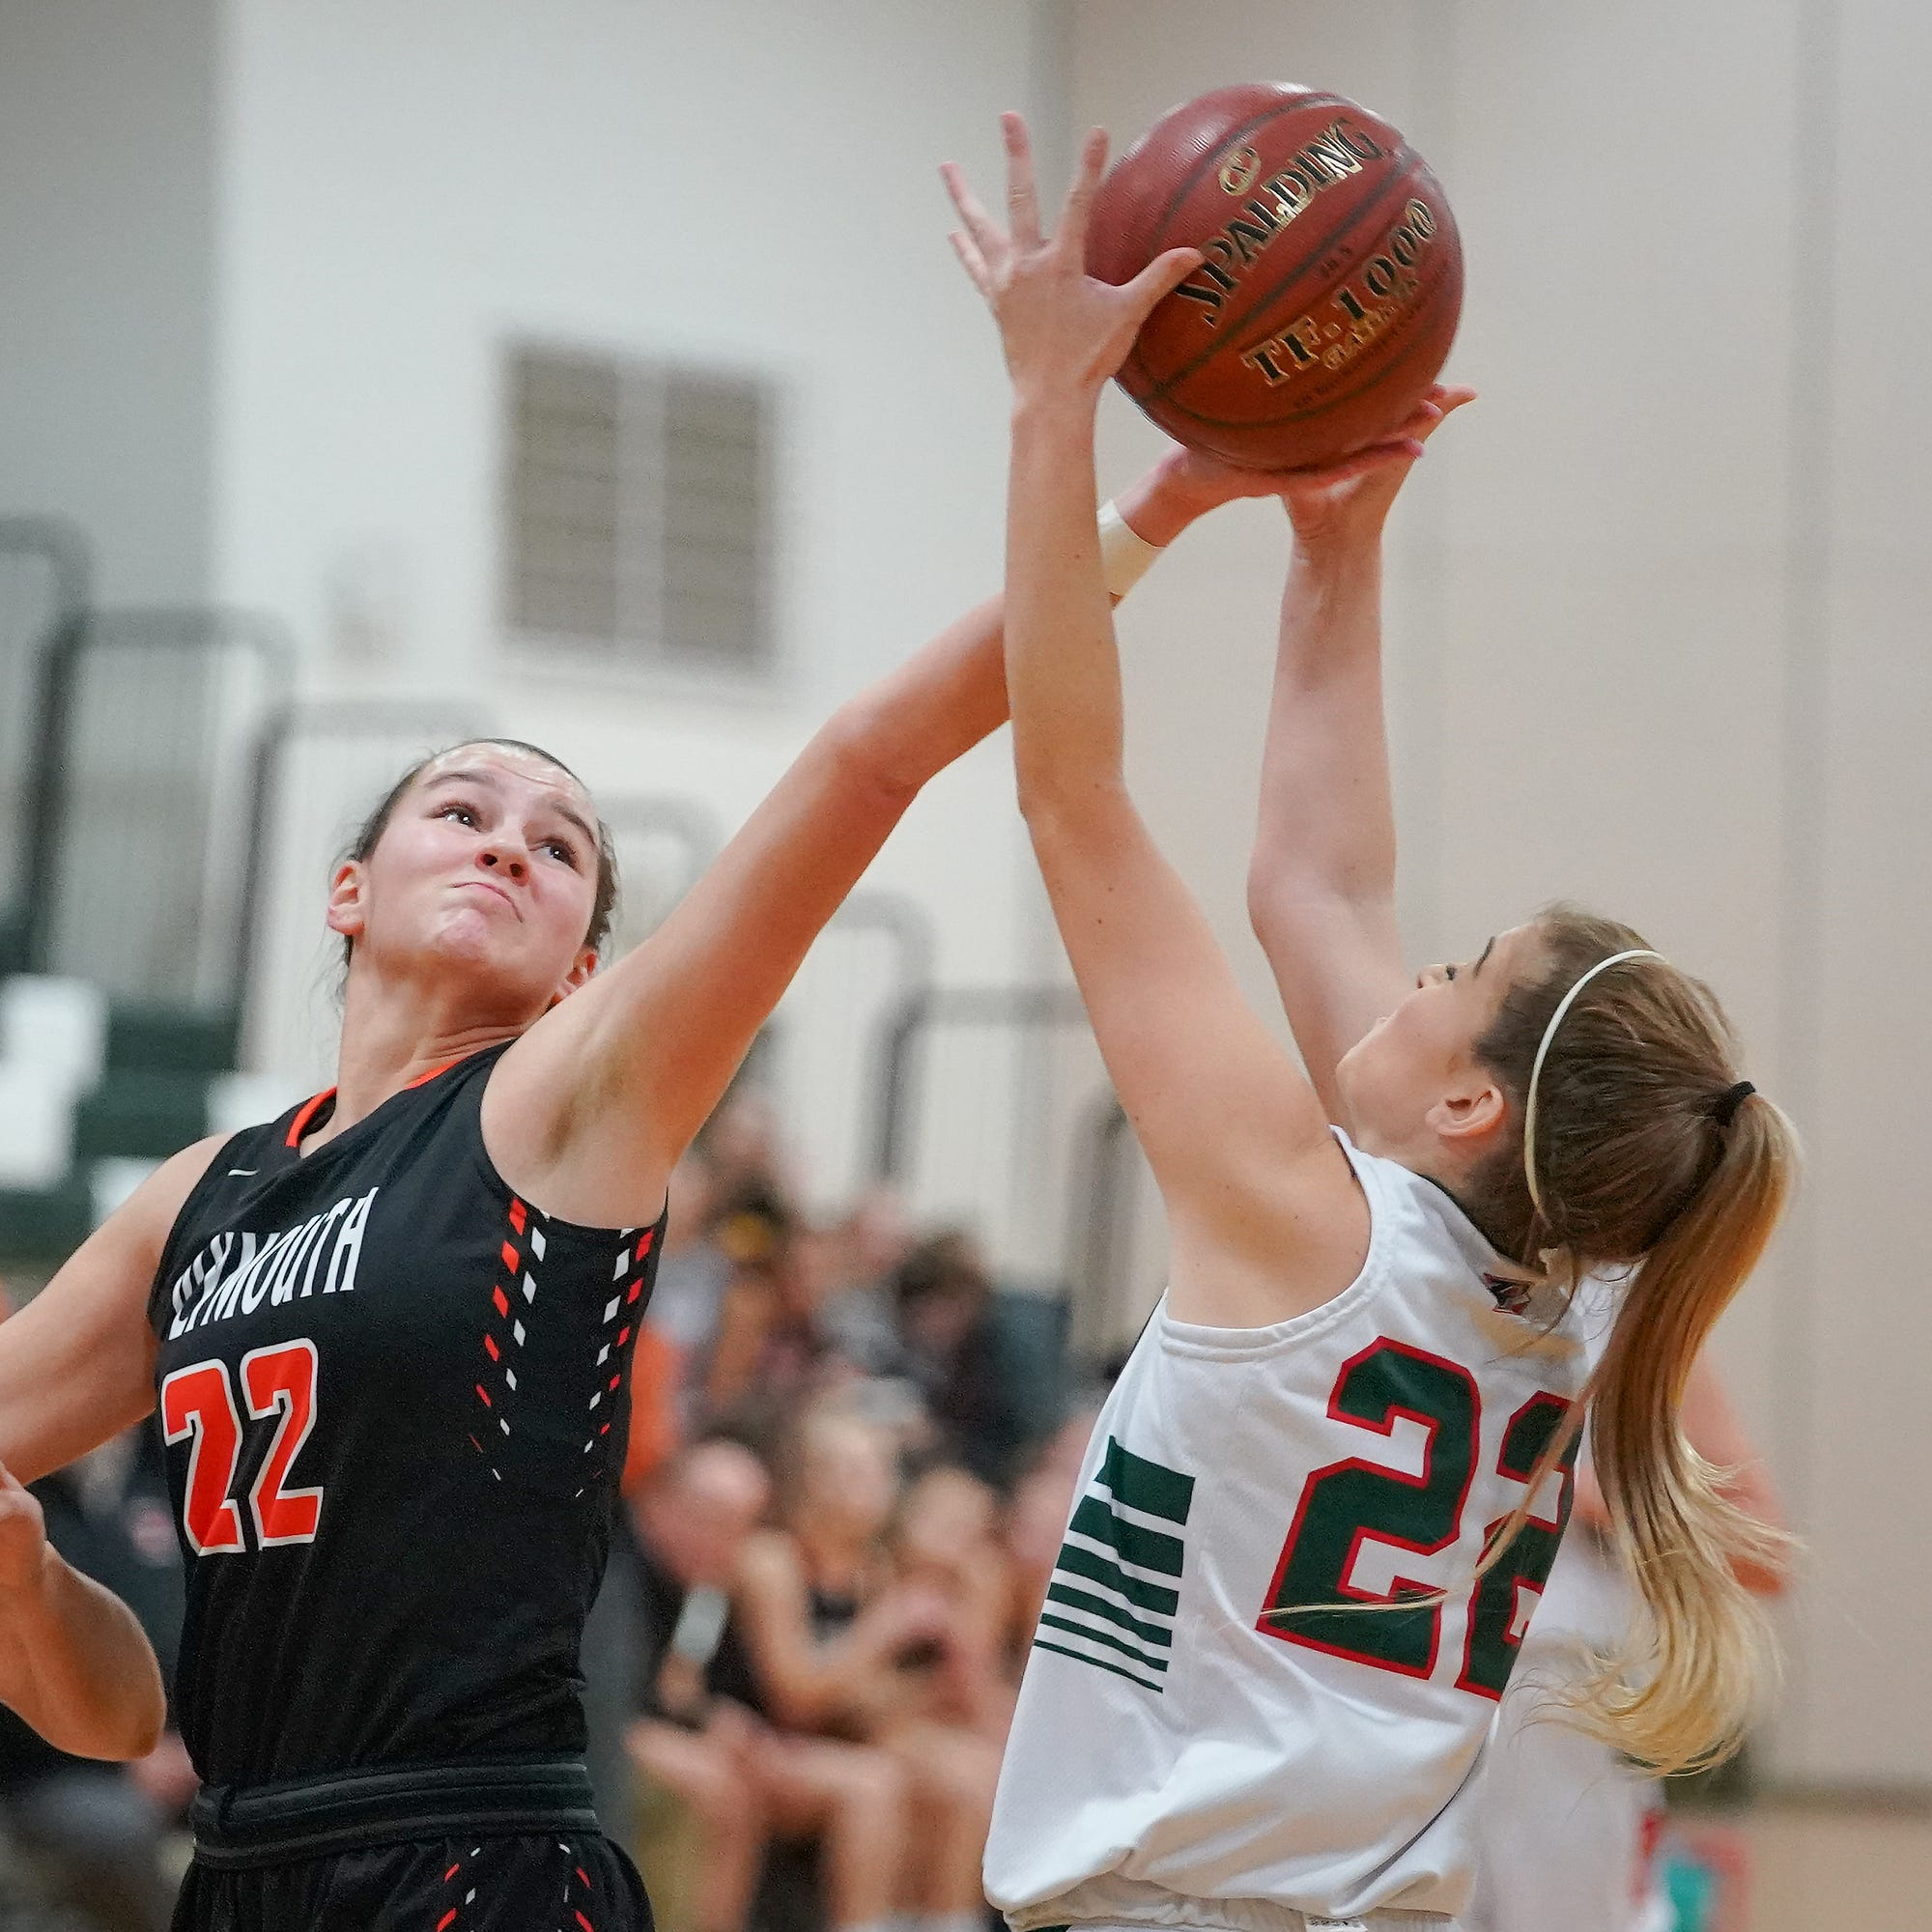 High school: Oshkosh North and Lourdes Academy earn wins in the Fox Valley Association